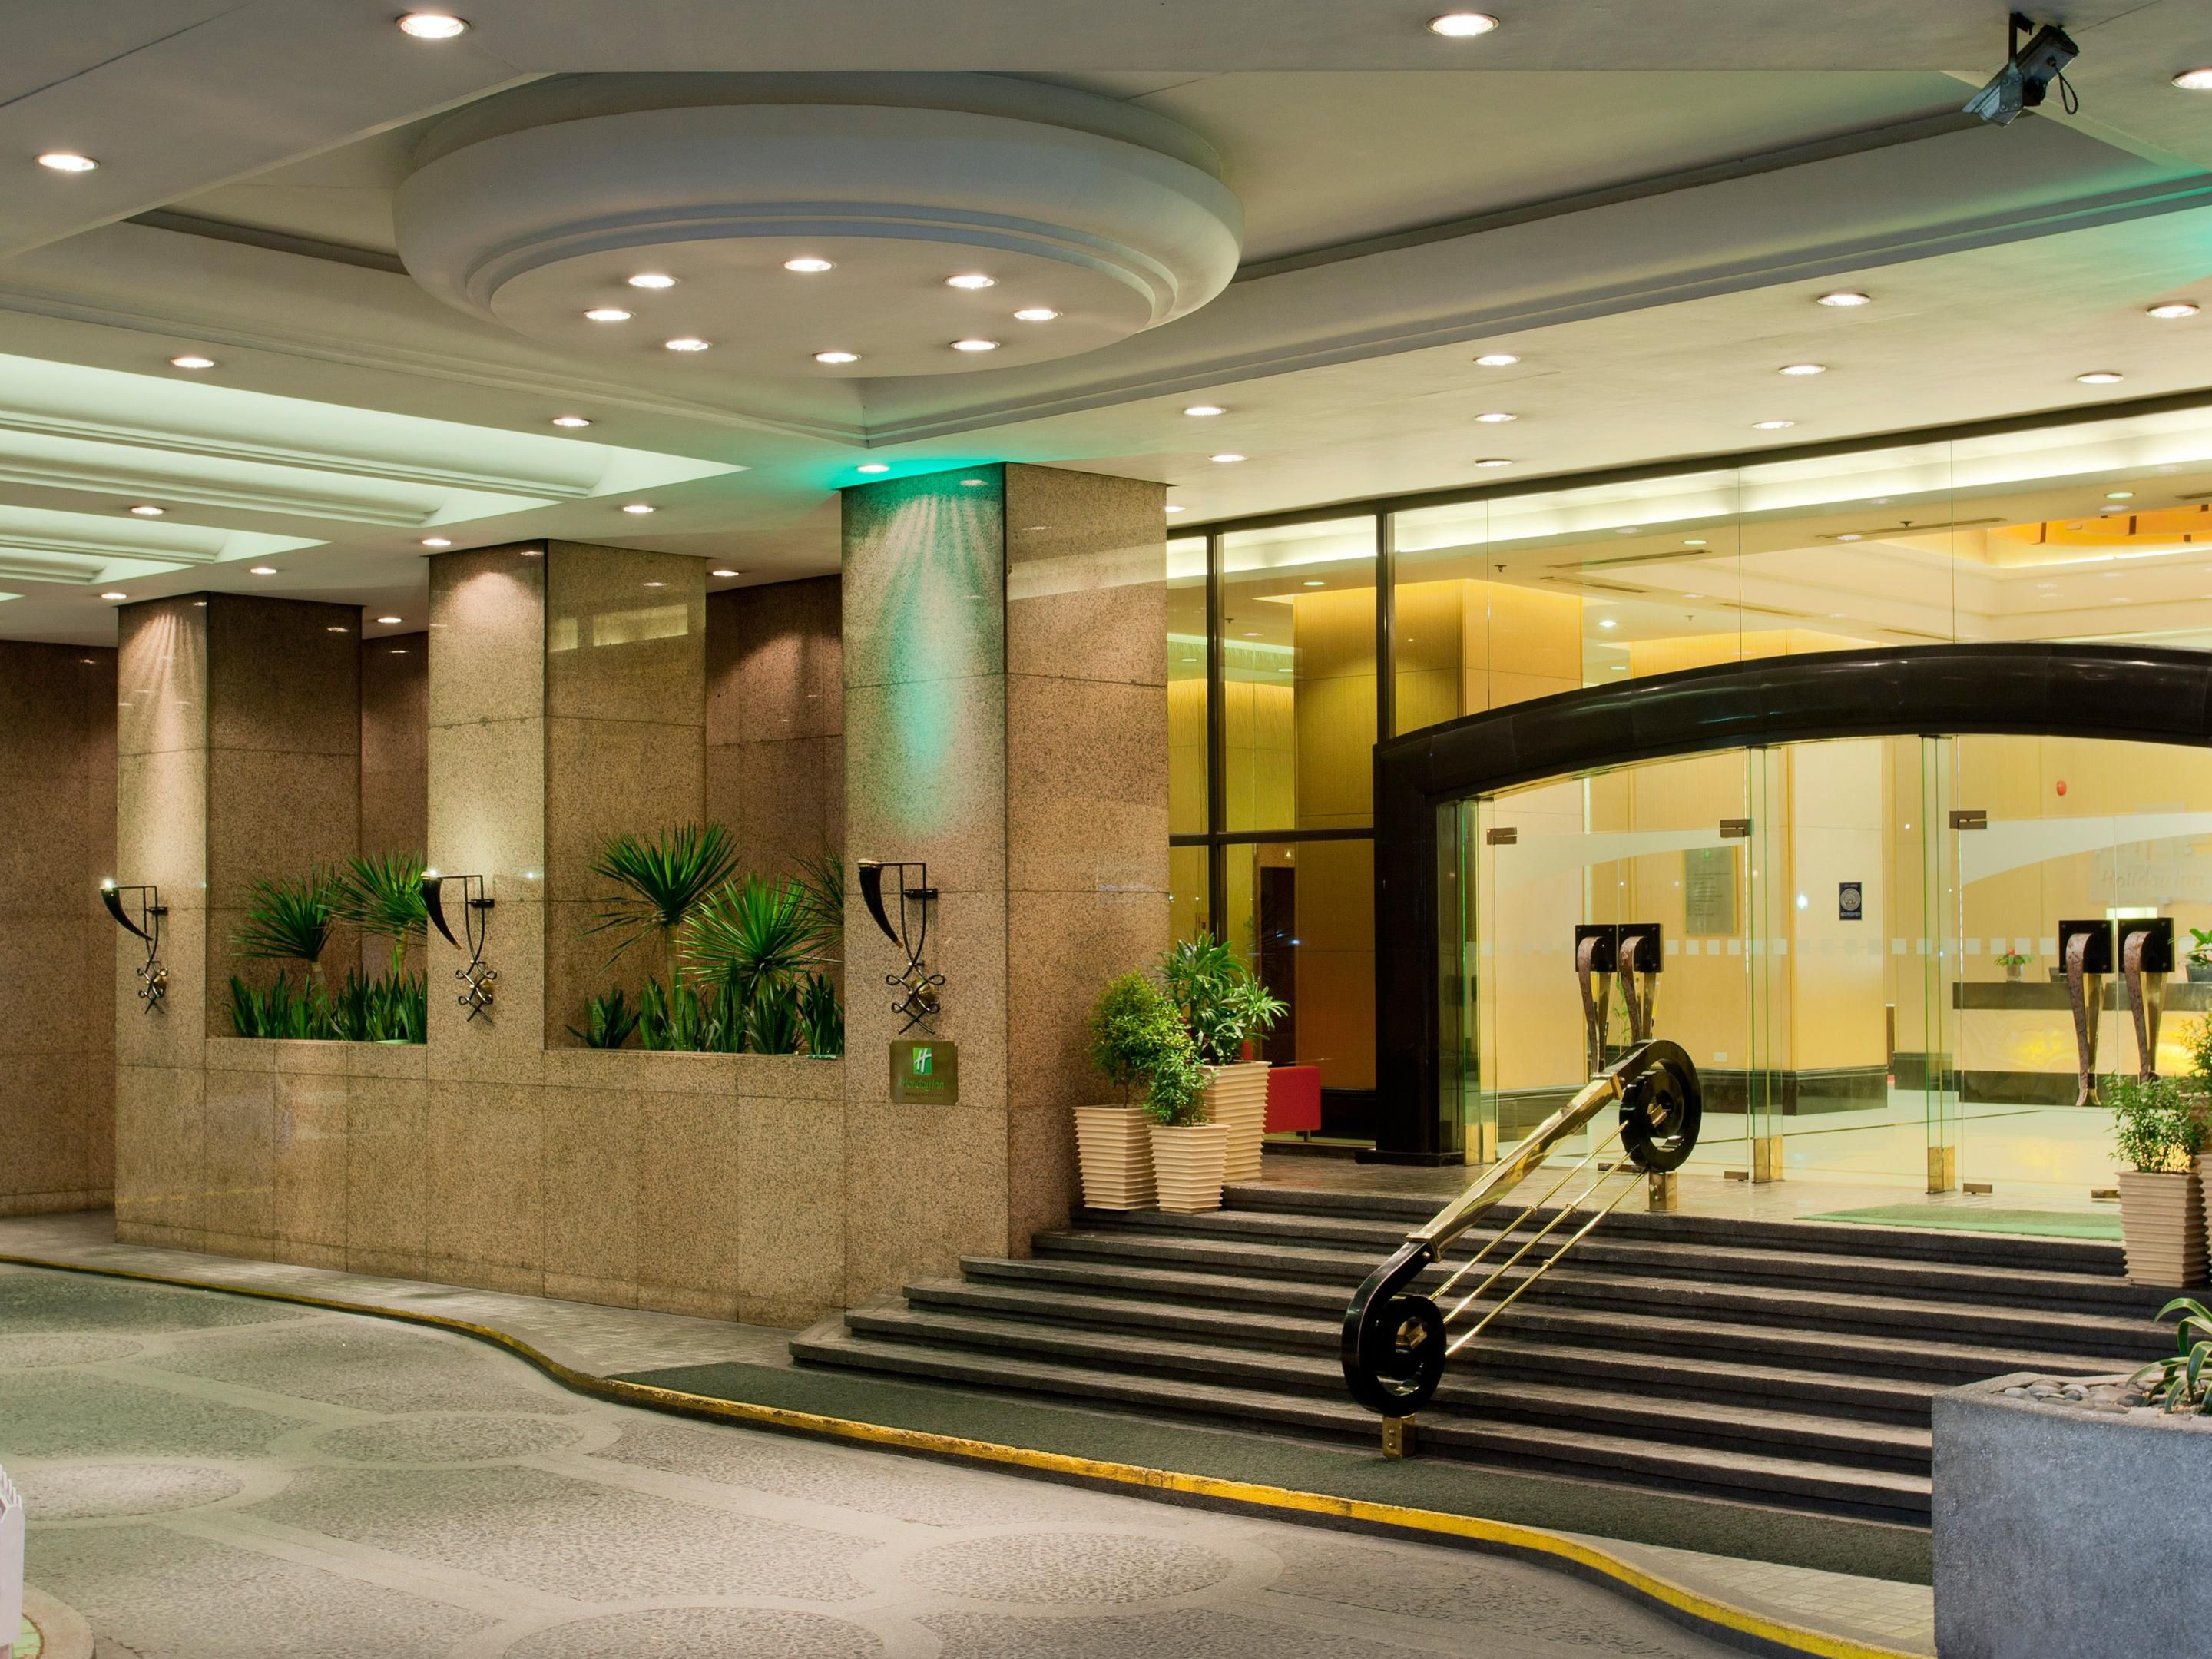 Holiday Inn Manila Galleria Hotel by IHG on hotels in boise idaho, hotels in davao philippines, hotels in tacloban city philippines, hotels in alicante spain, hotels in subic bay philippines, hotels in detroit michigan, hotels in makati philippines, hotels in laoag philippines, hotels in lapu-lapu city philippines, hotels in global city philippines, hotels in dagupan philippines, hotels in boston mass, hotels in rio de janeiro brazil, hotels in angeles pampanga philippines, 5 star hotels in philippines, hotels in zamboanga city philippines, hotels in quezon city philippines, hotels in lucena city philippines, hotels in daanbantayan philippines, hotels in cebu city philippines,